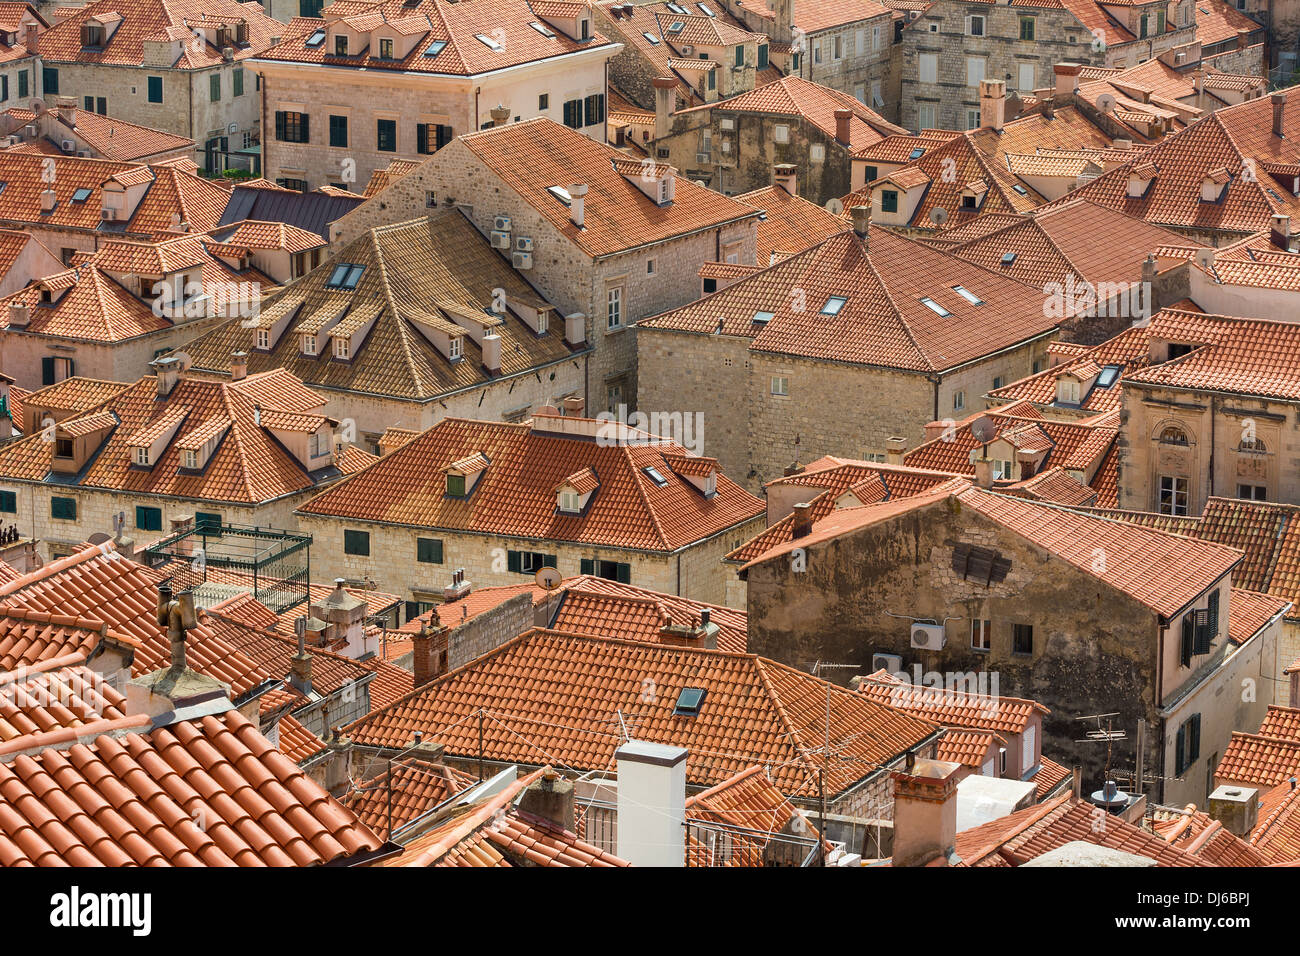 Closeup view of Dubrovnik rooftops with characteristic orange tiles. Stock Photo